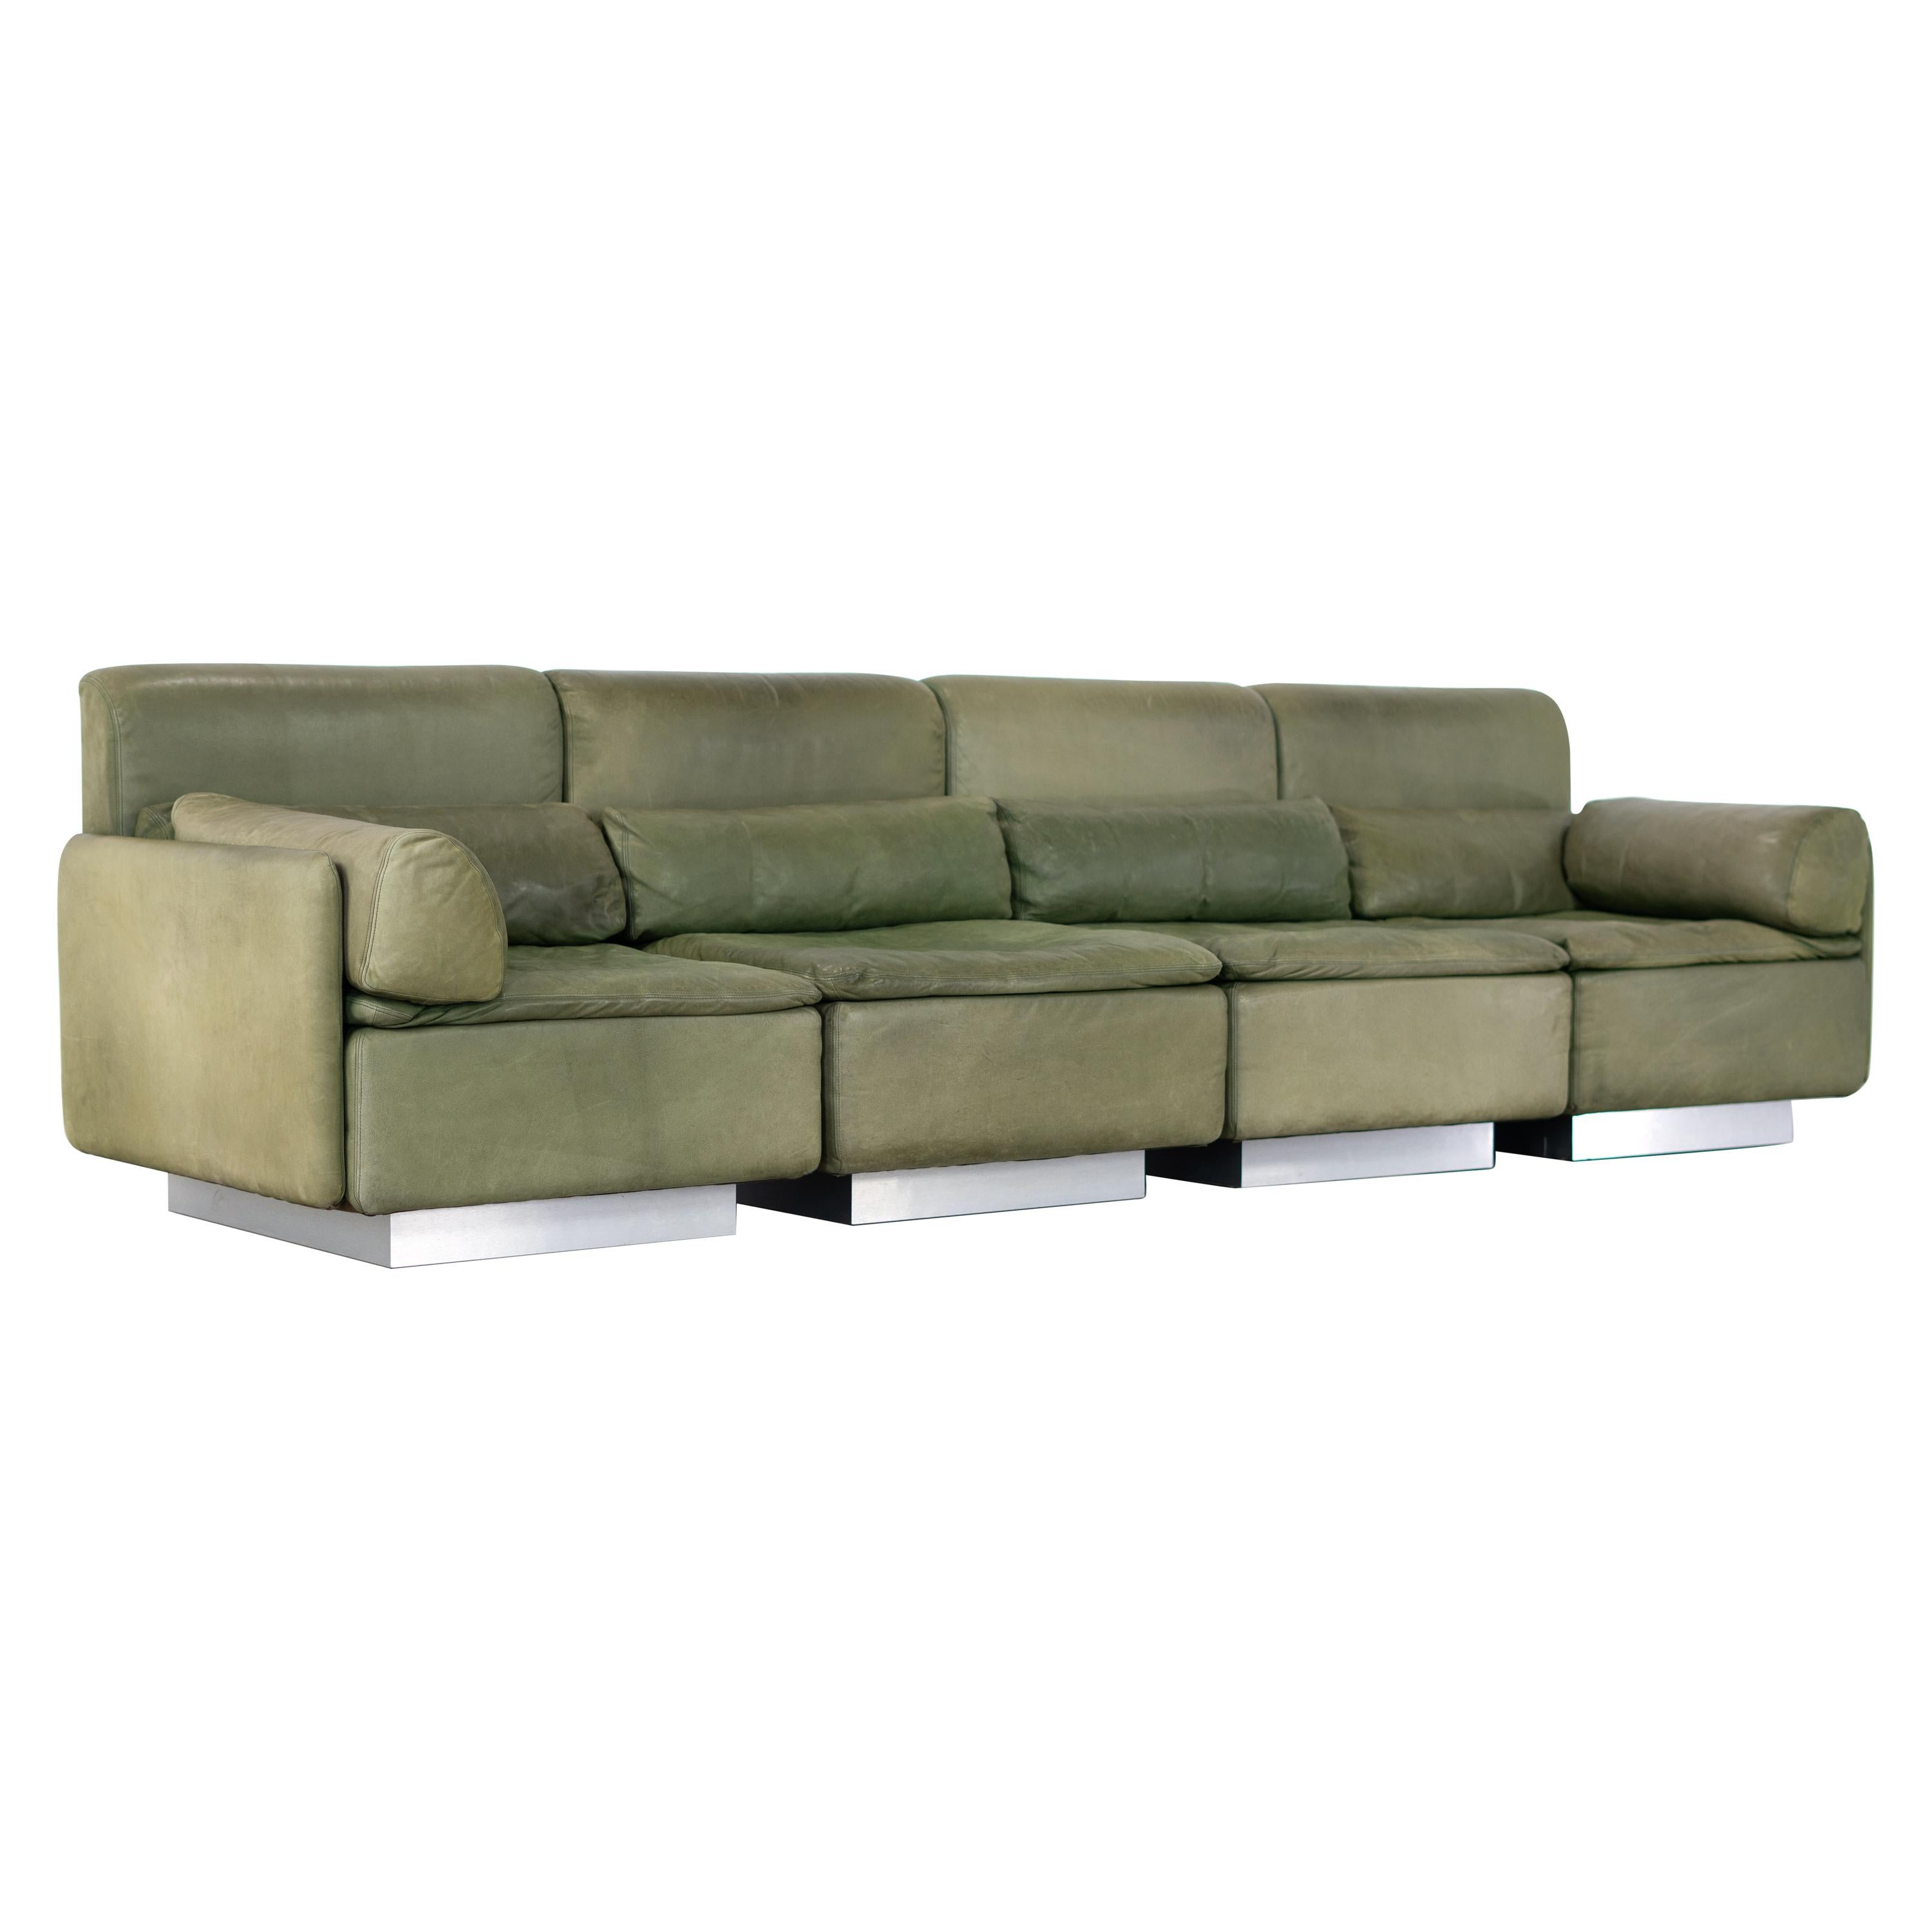 Walter Knoll, Hollywood Lounge 4 Seater Sectional Sofa, 1972 for Knoll, Olive